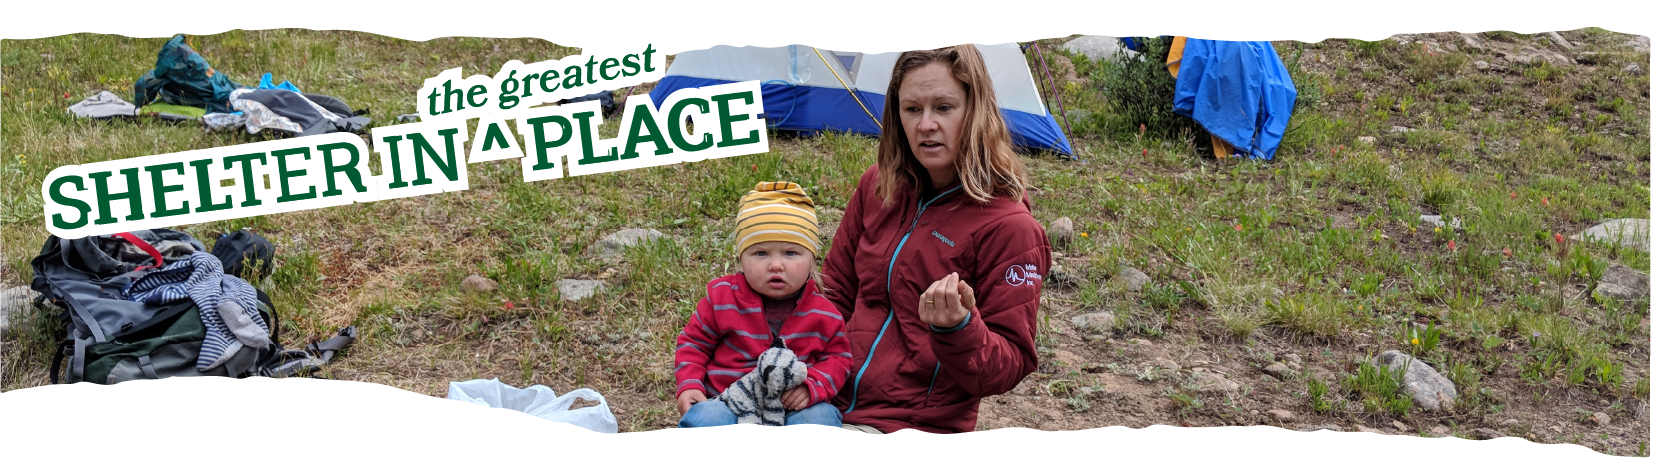 Title: Shelter in the Greatest Place laid over a photo of Rachel and one of her children on a backyard camping trip.